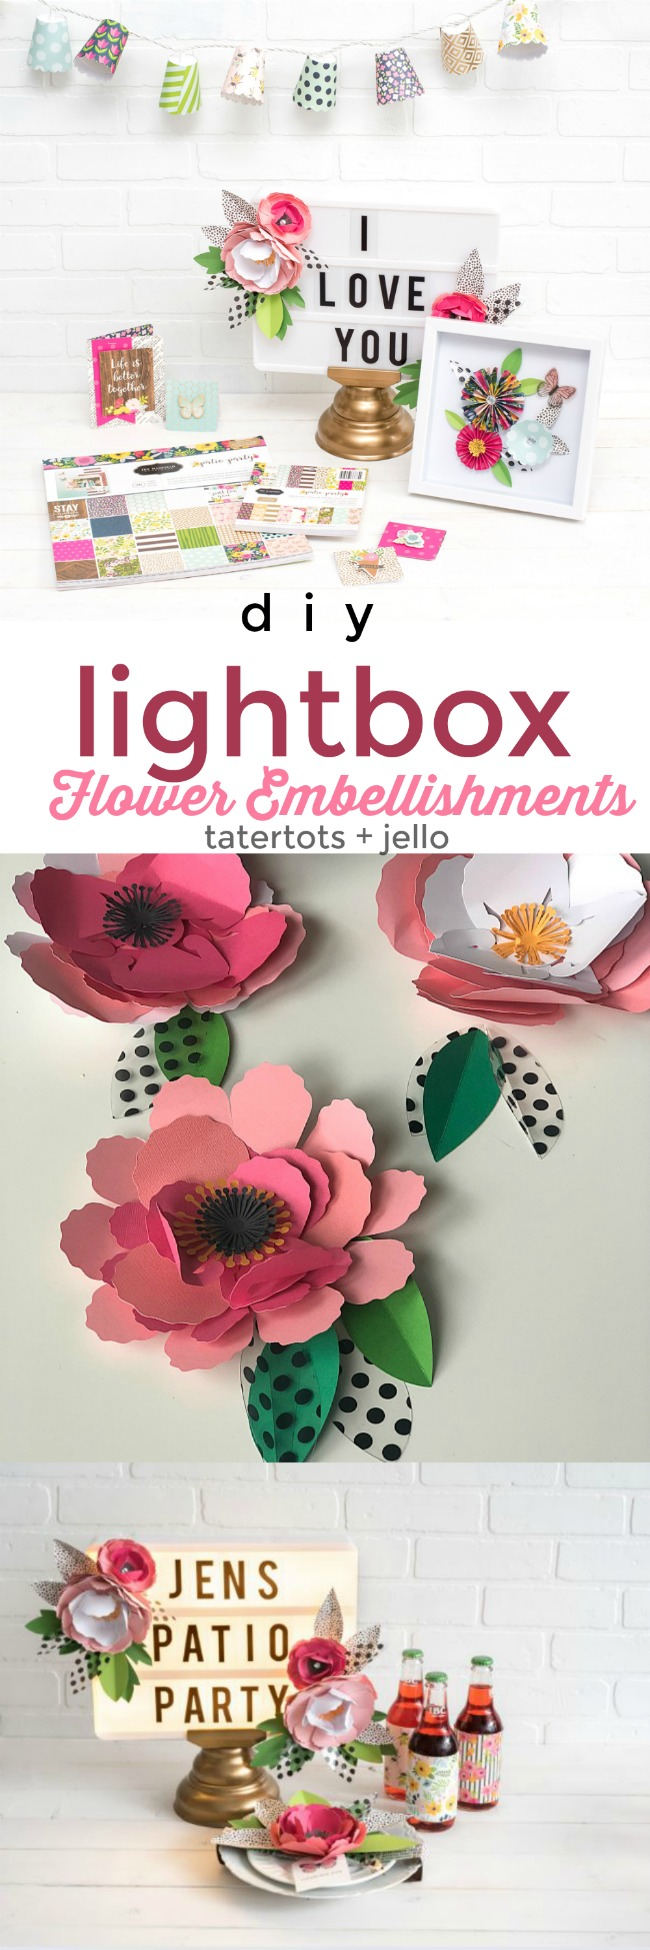 Dress up your marquee lightbox with paper flowers. You can change them out throughout the year. It's an easy way to make your lightbox the centerpiece of your home decor! #papercrafts #lightbox #paperflowers